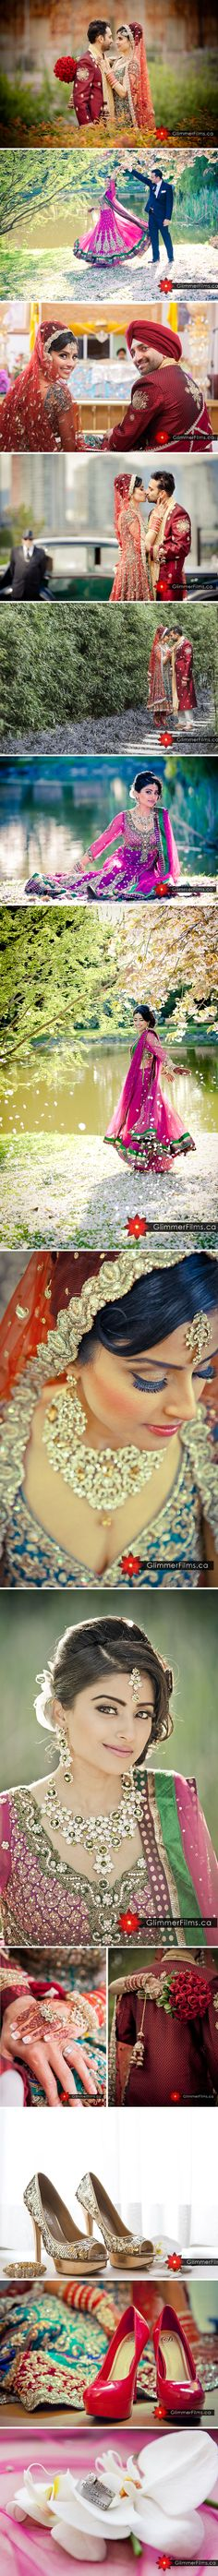 Indian wedding photography. Couple photo shoot ideas. http://tinyurl.com/pkm7khr